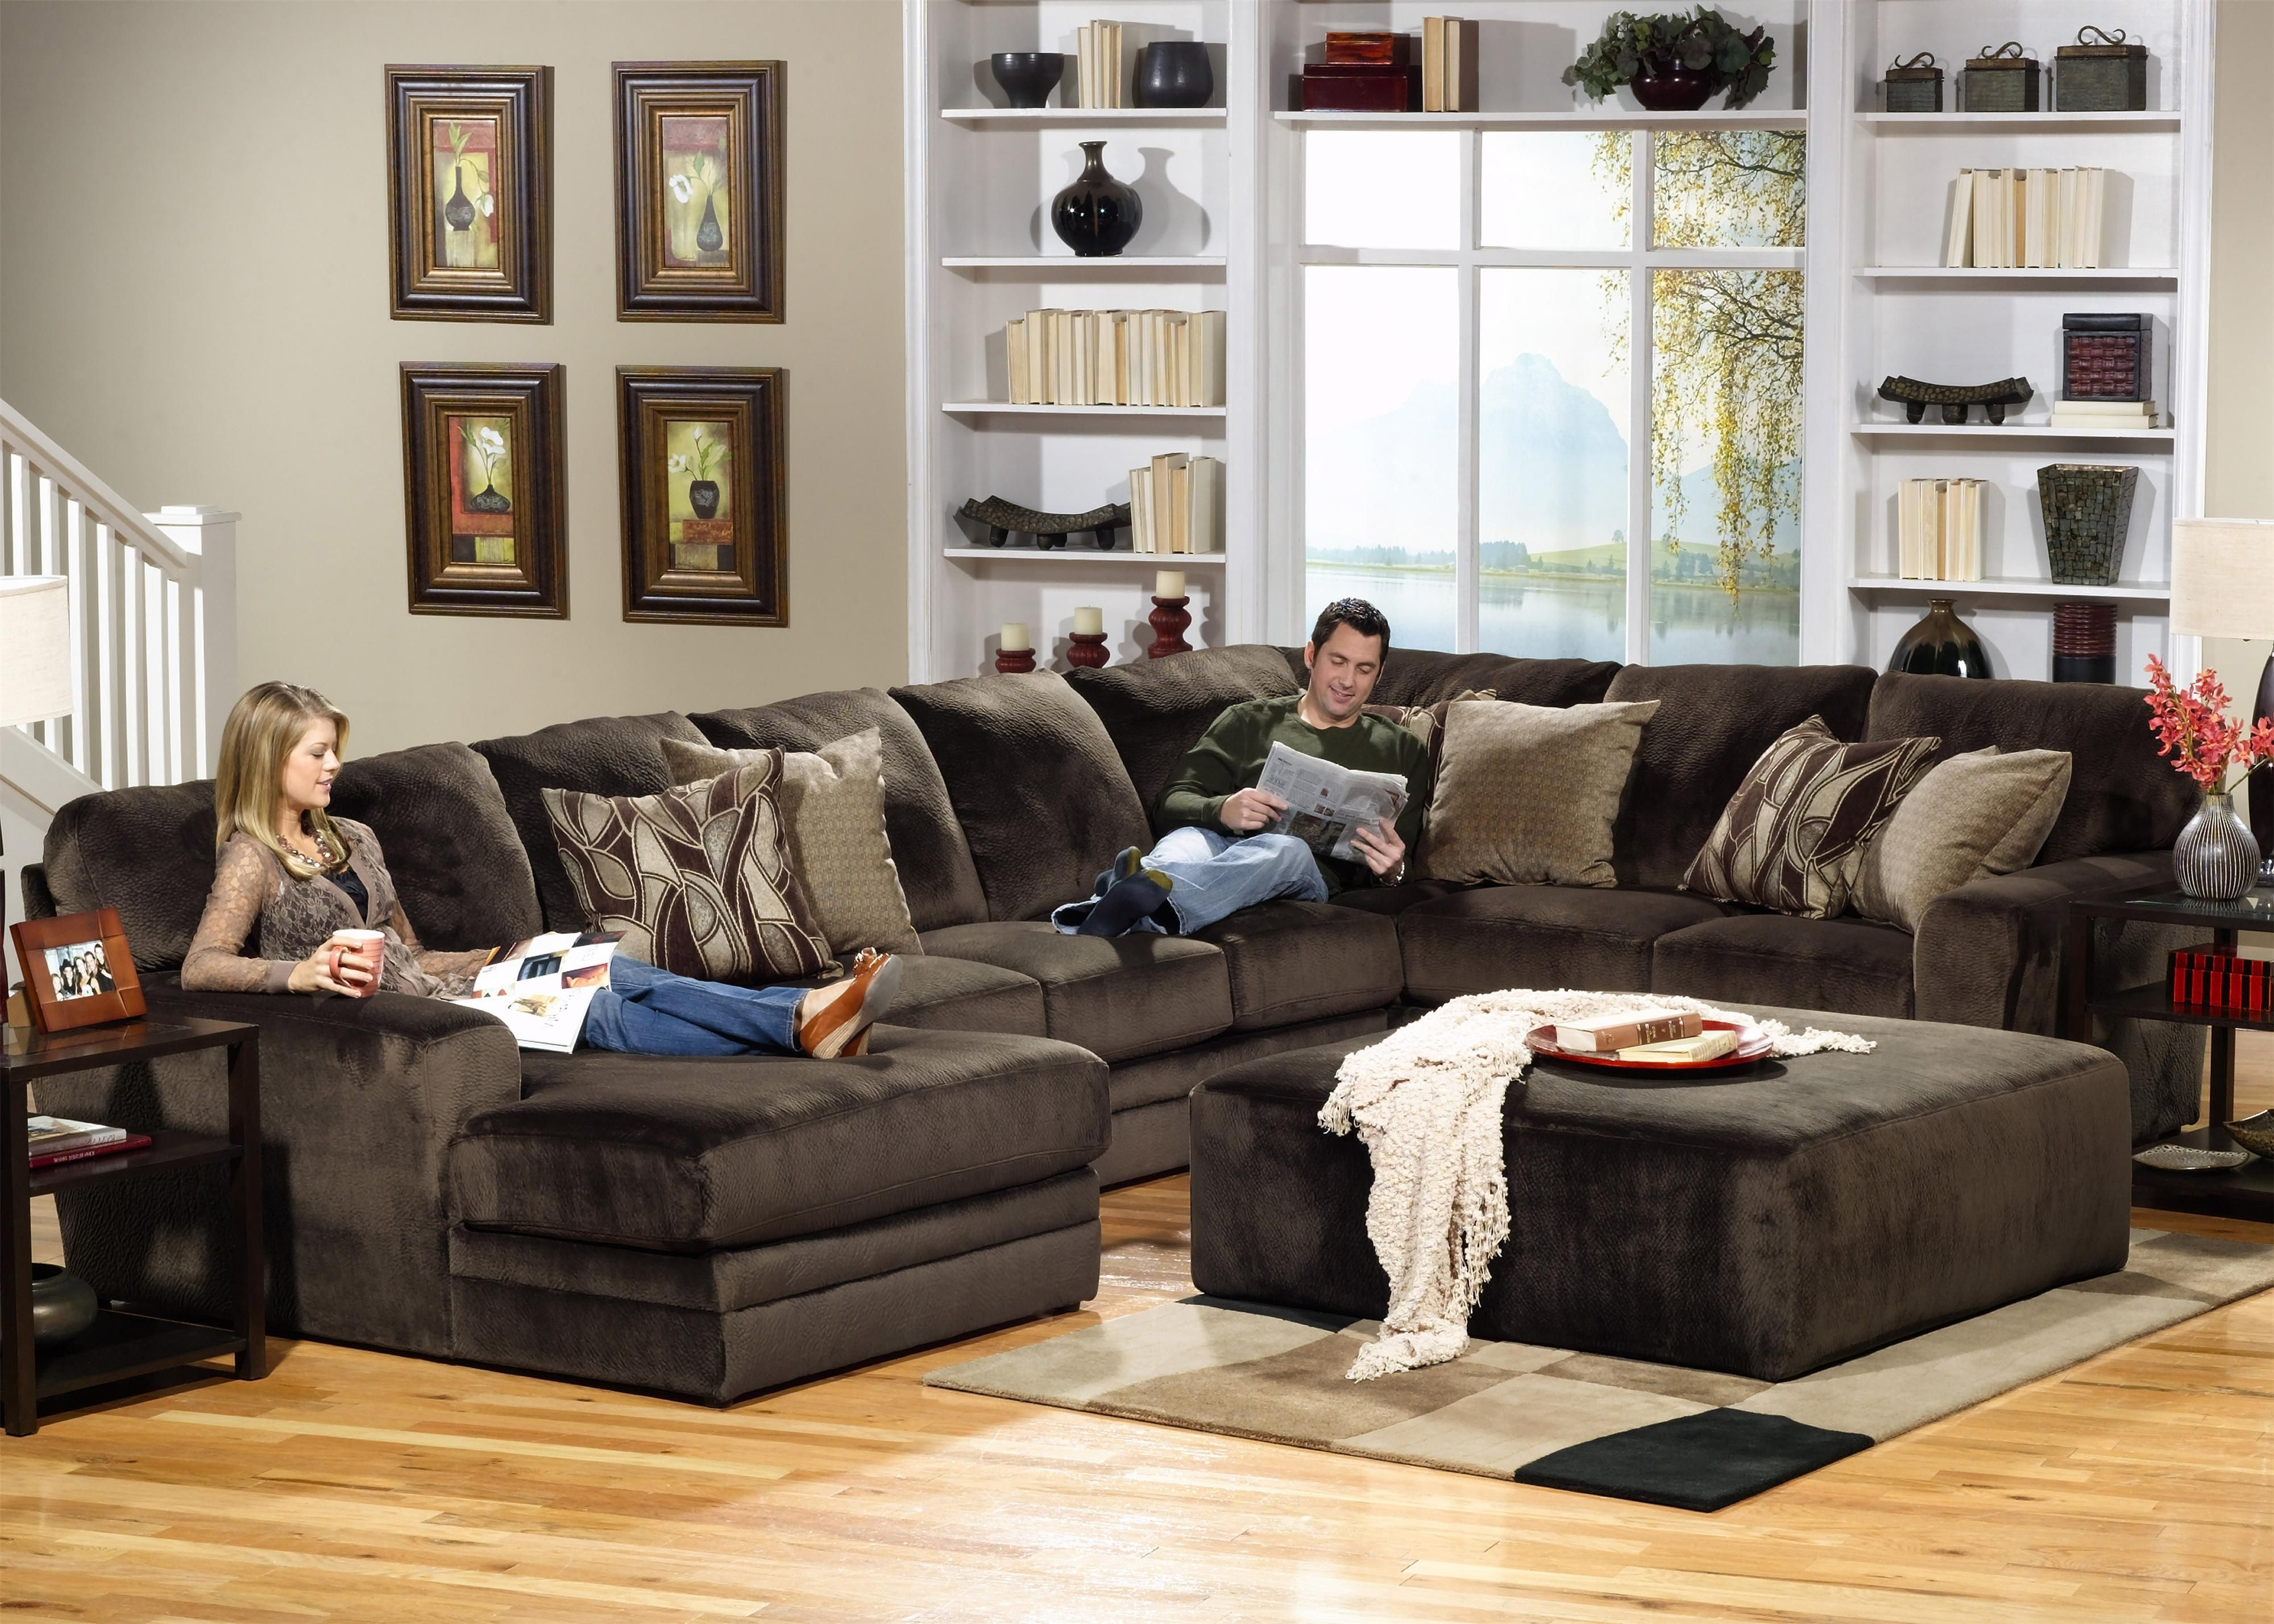 4377 Everest 3 Piece Sectional With Rsf Sectionjackson Furniture Regarding Janesville Wi Sectional Sofas (Photo 5 of 10)